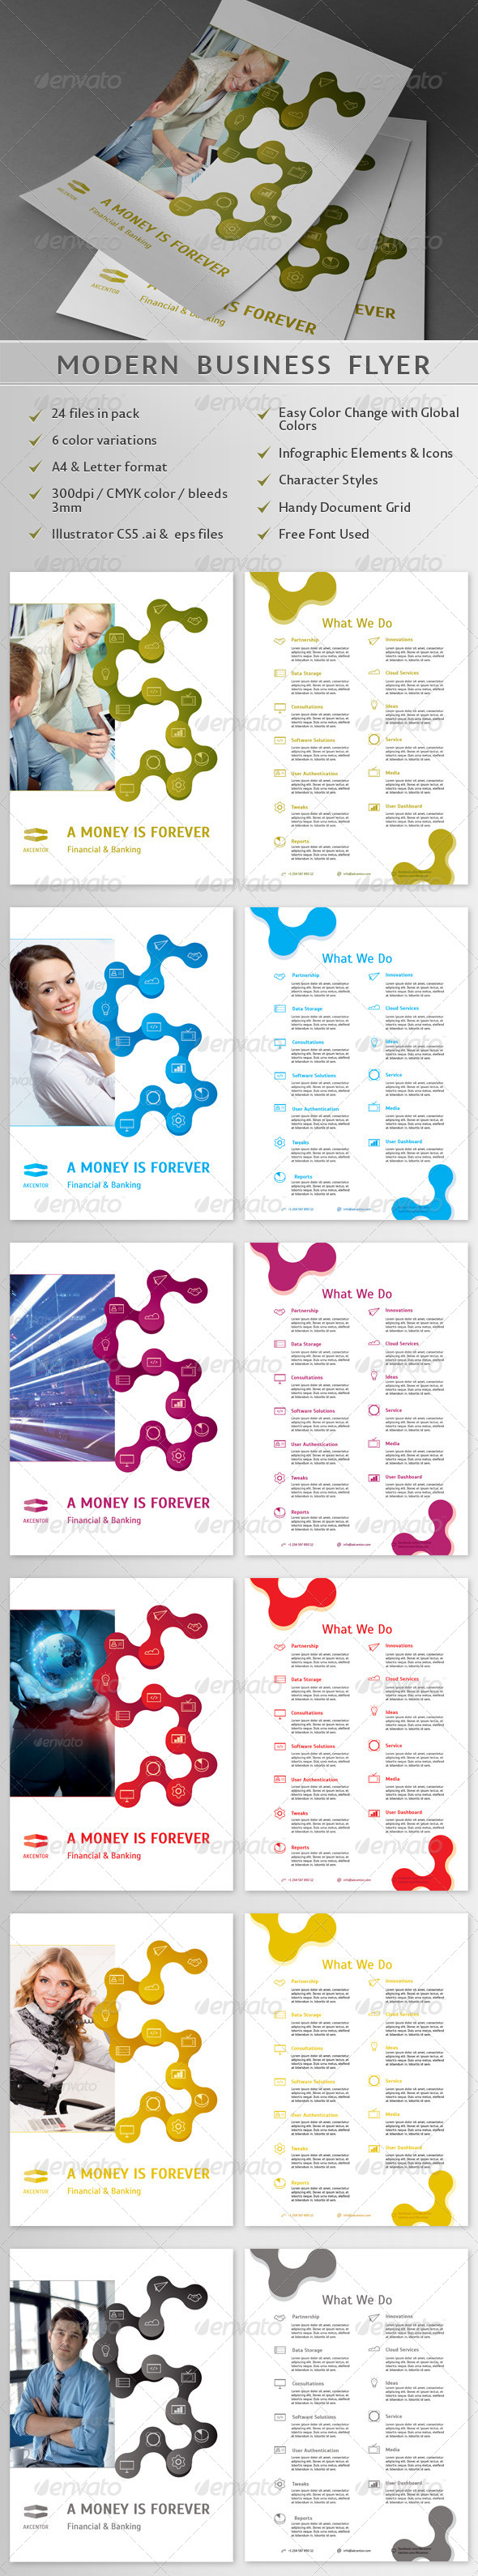 GraphicRiver Modern Business Flyer 02 4751629